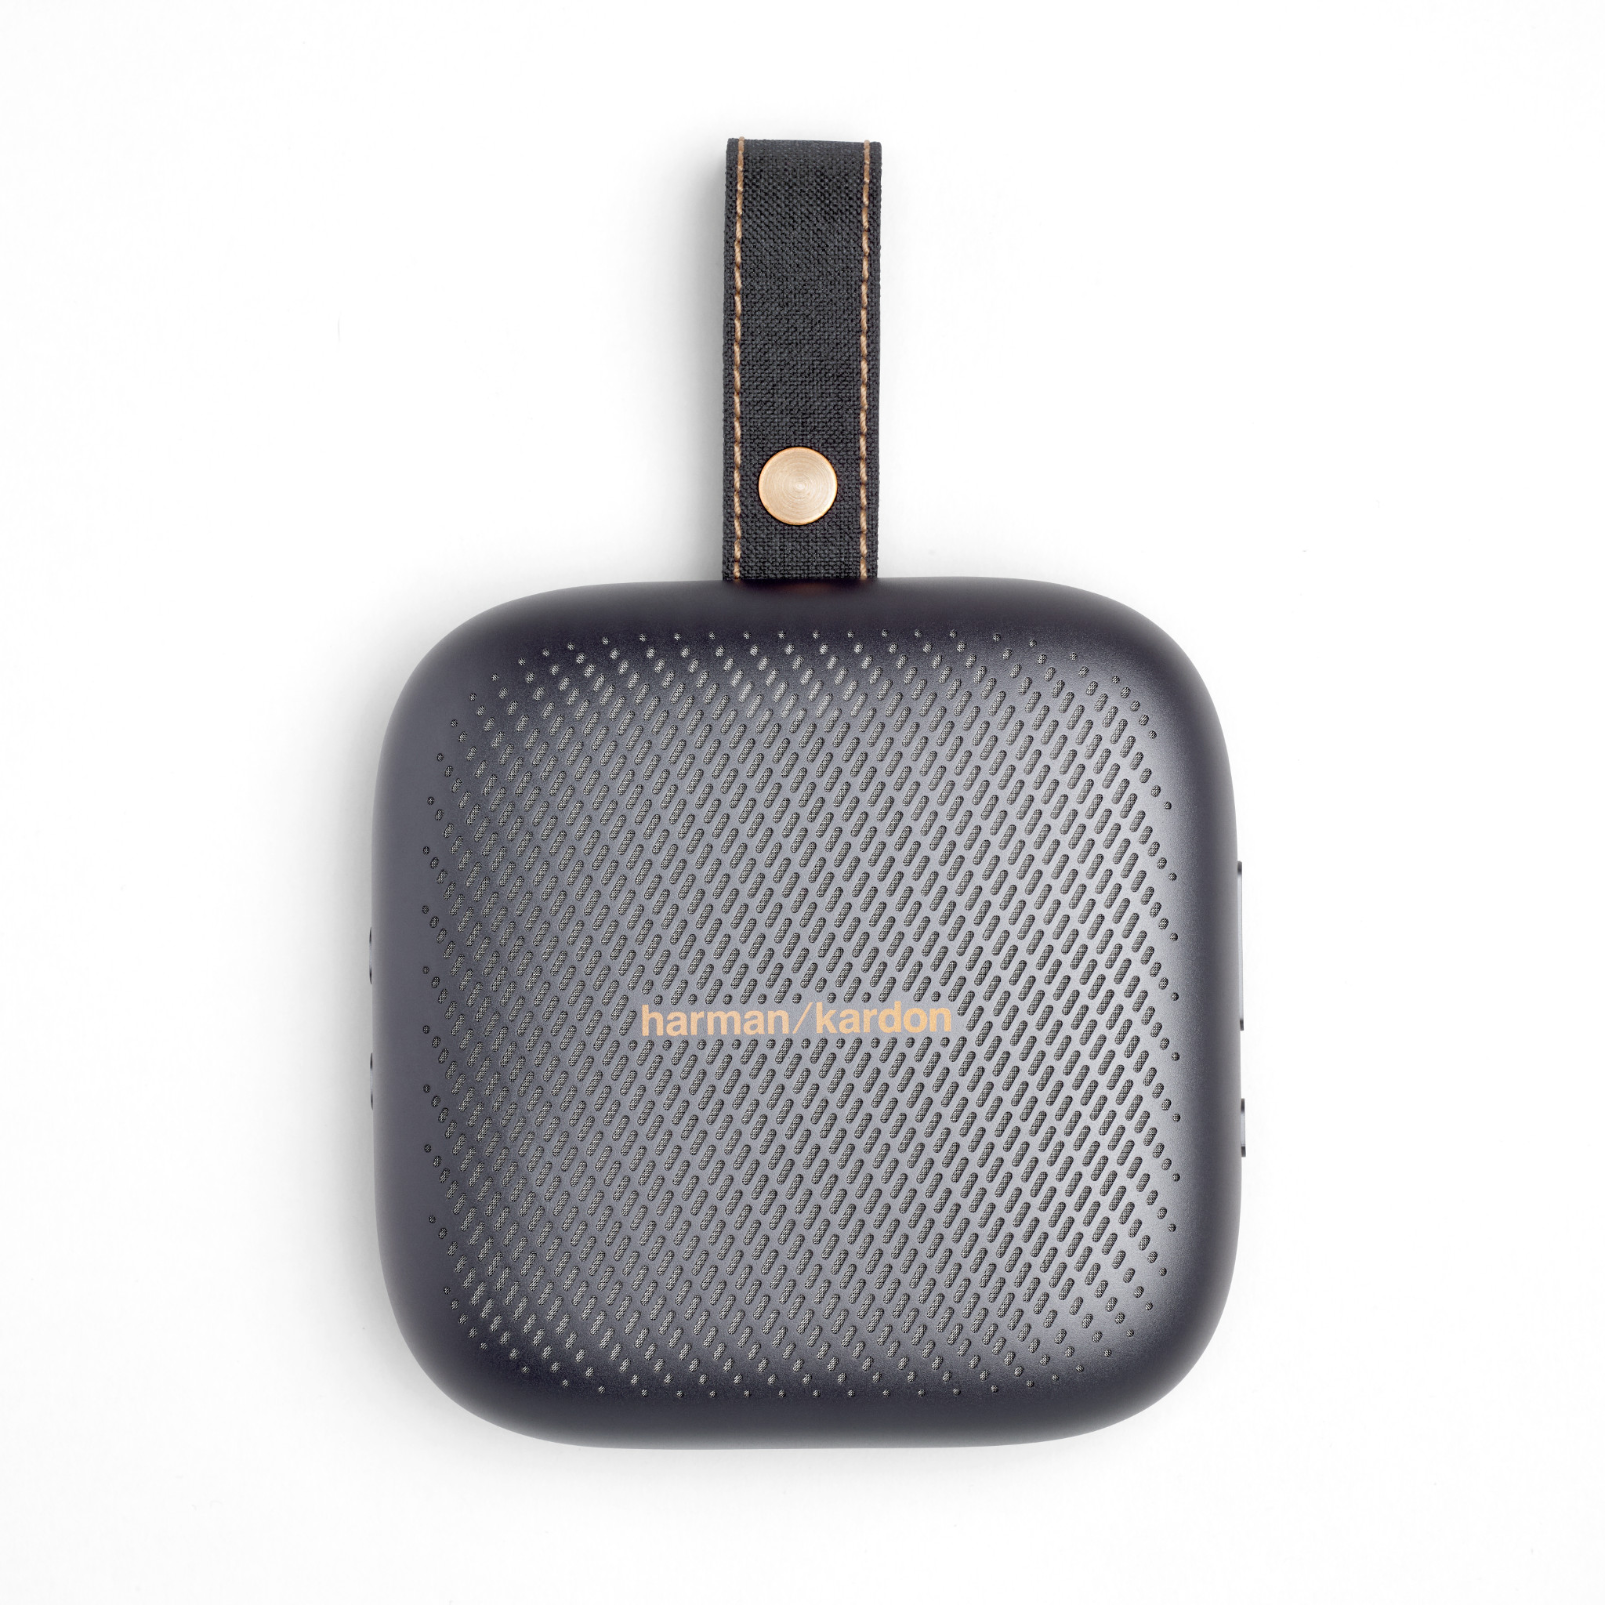 Harman Kardon Neo - Space Gray - Portable Bluetooth speaker - Detailshot 3